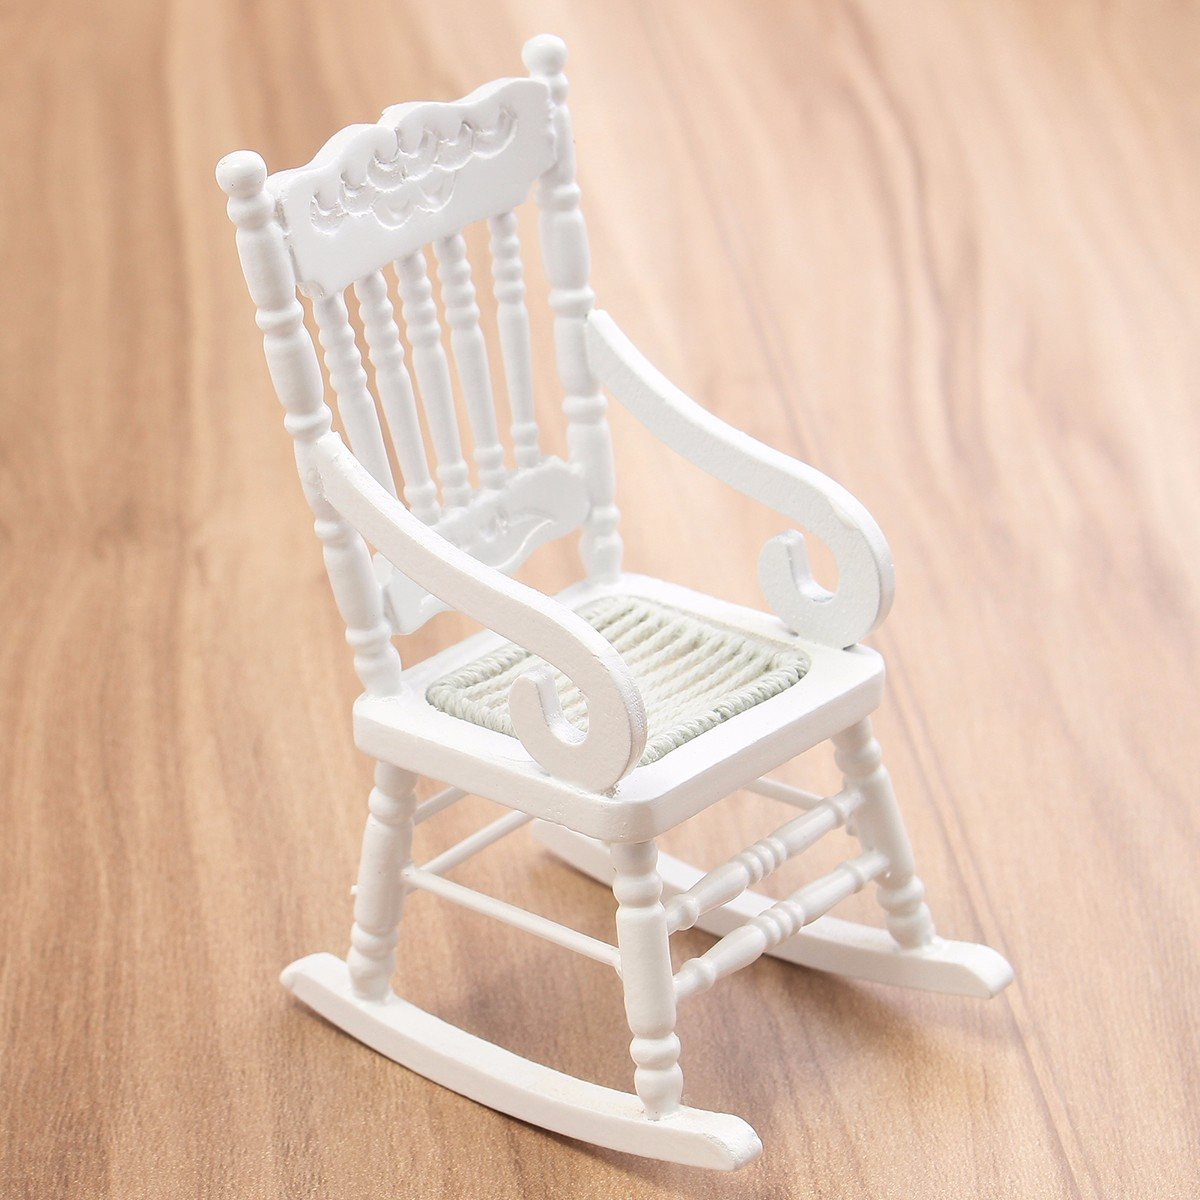 Us 4 25 New 1 12 Dollhouse Miniature Furniture White Wooden Rocking Chair  Hemp Rope Seat For Dolls House Accessories Decor Toys In Doll Houses From